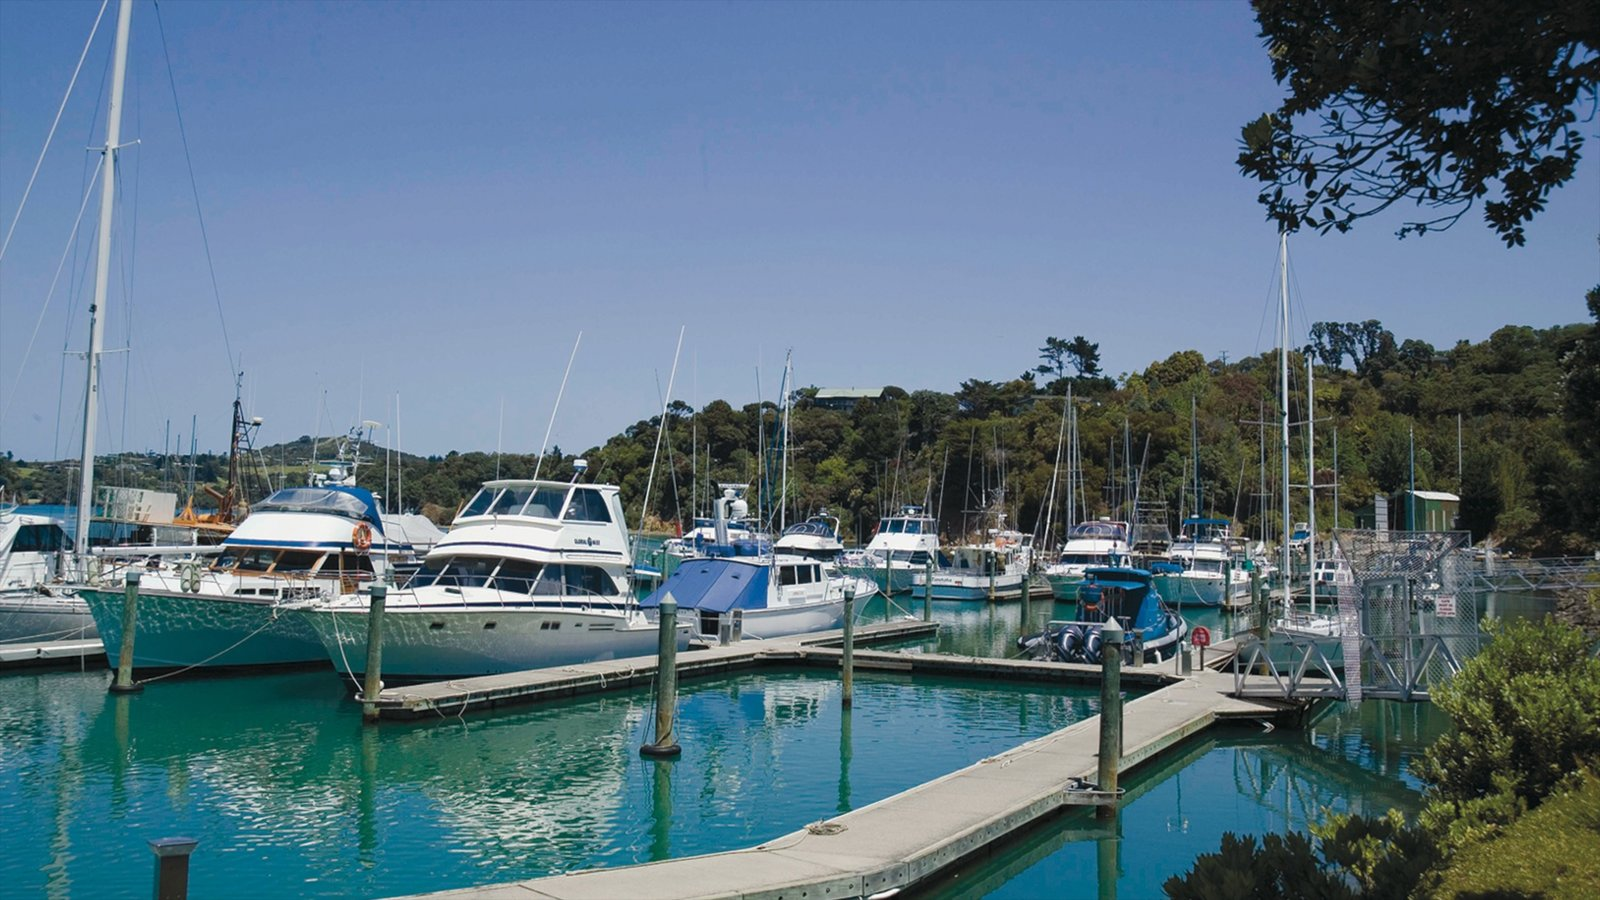 Whangarei showing boating, tropical scenes and a marina